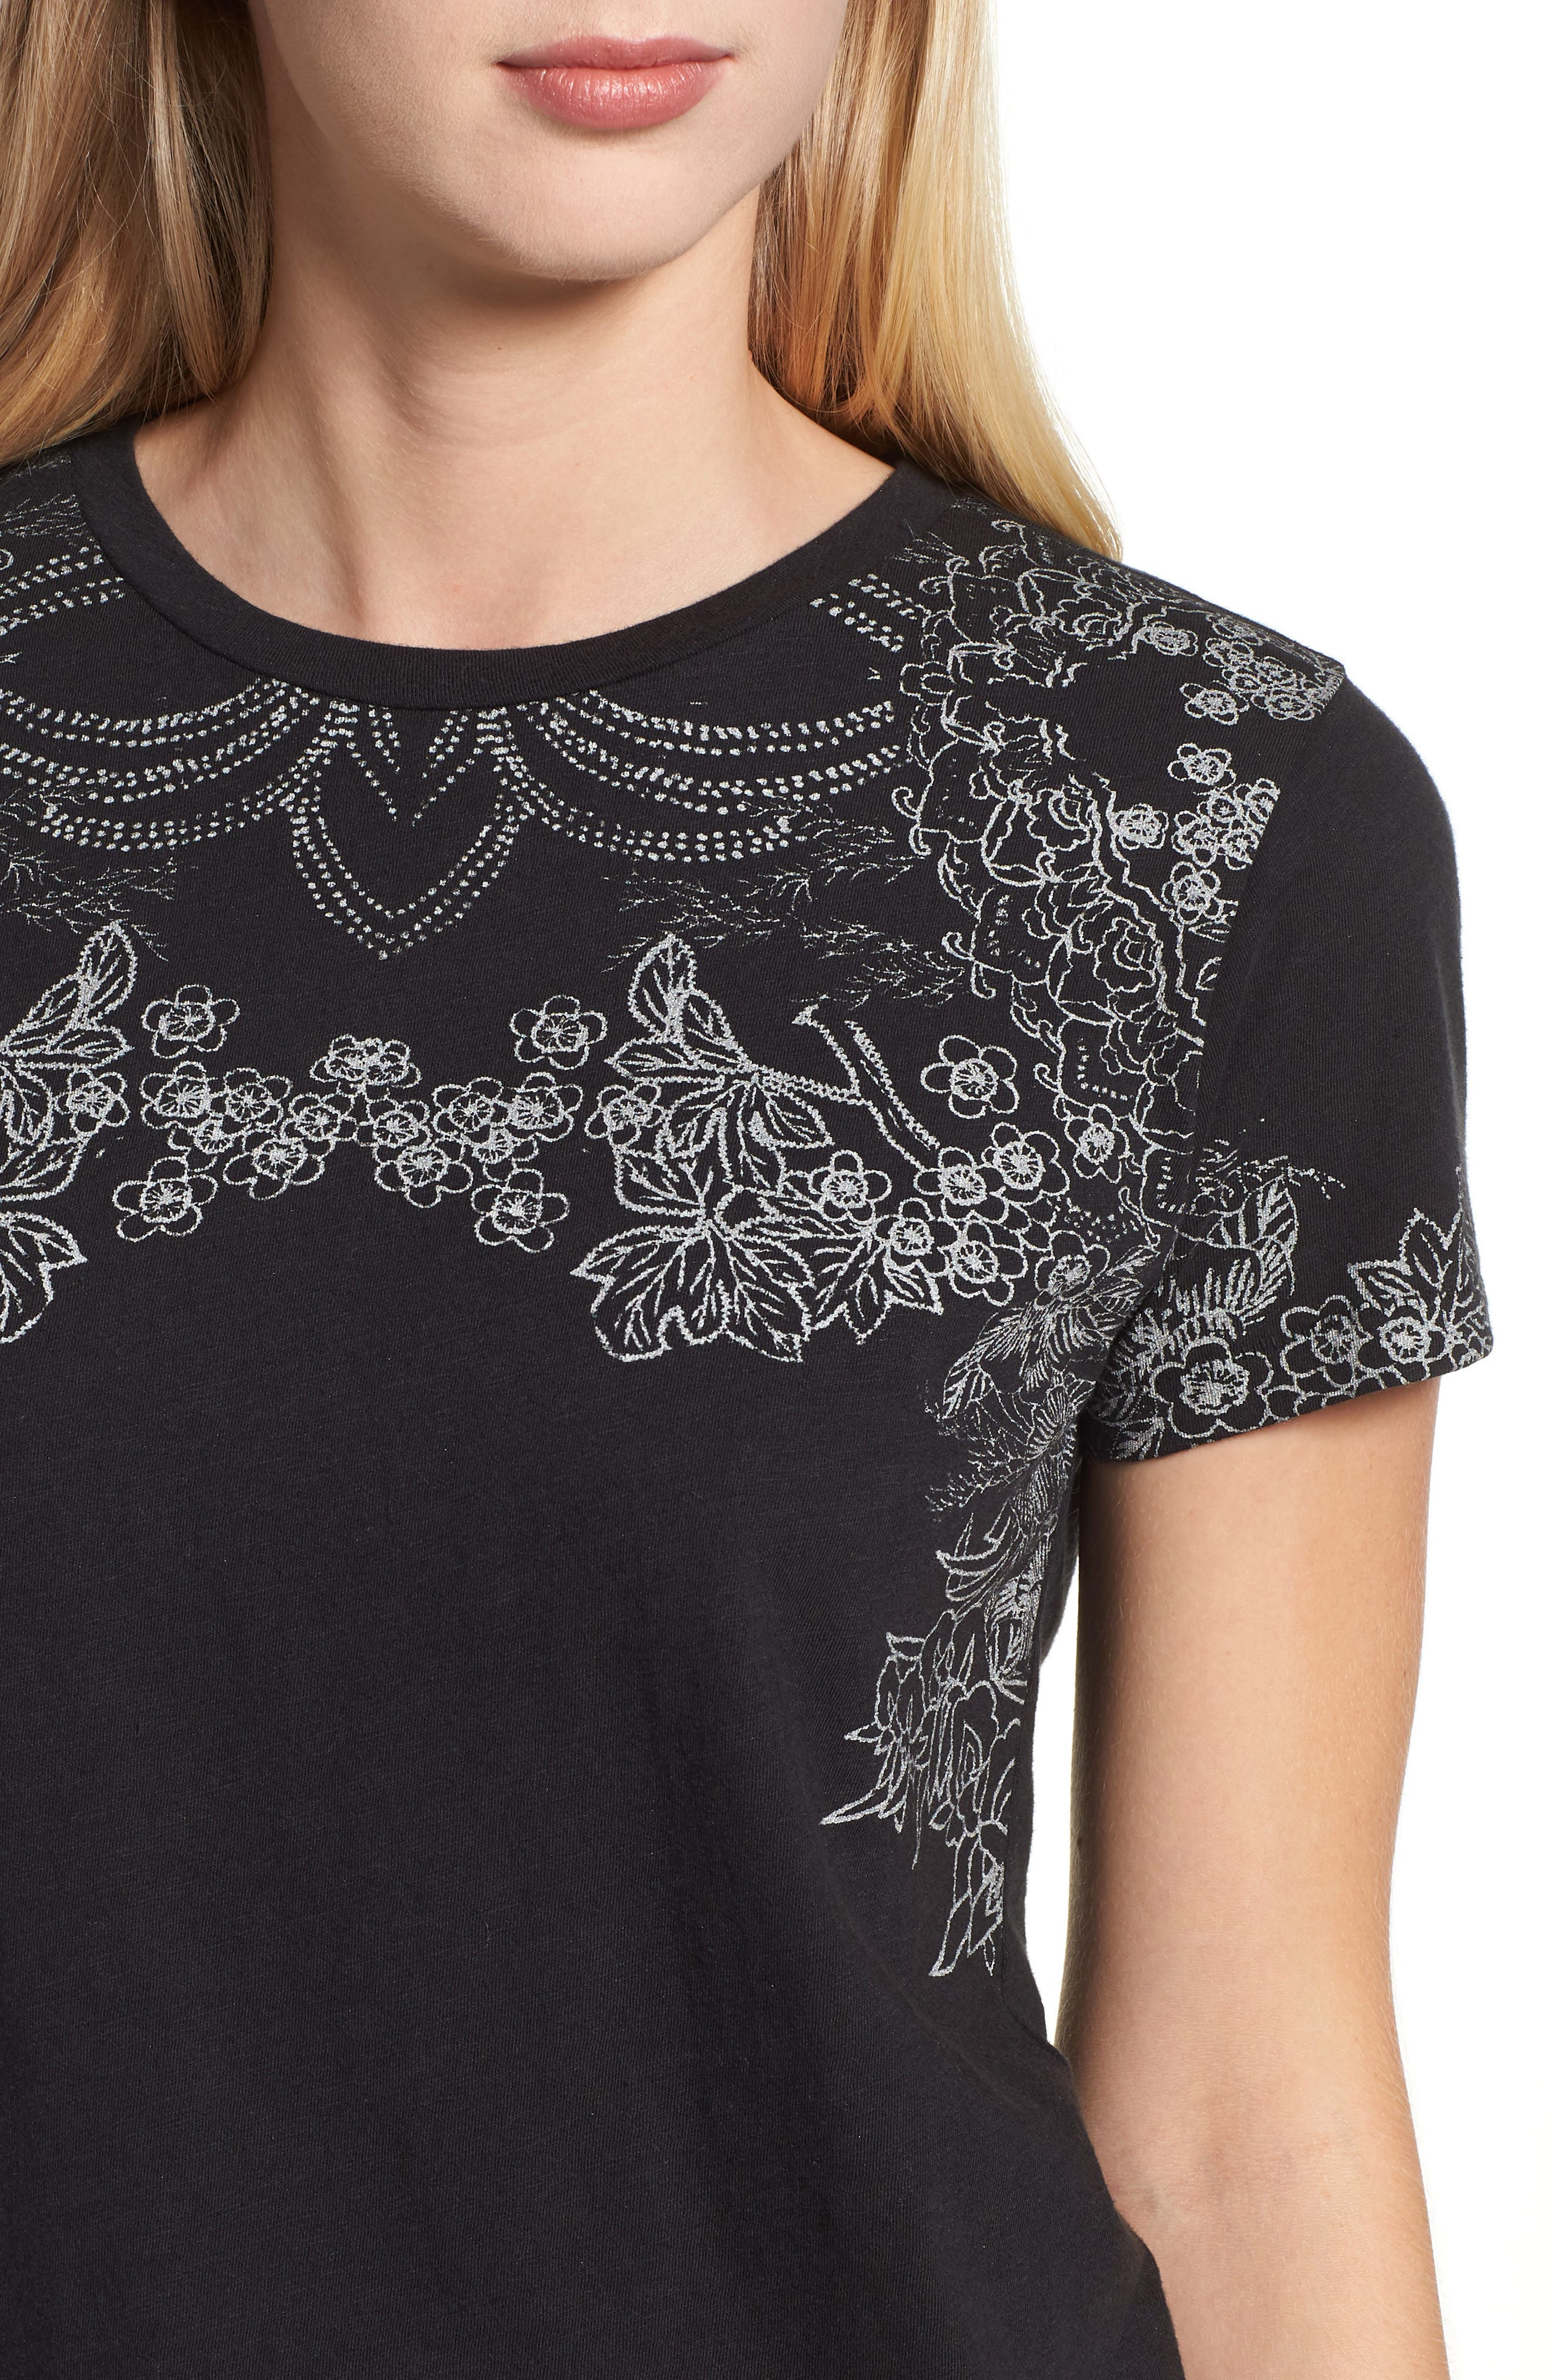 LUCKY BRAND,                             Embroidered Tee,                             Alternate thumbnail 4, color,                             001